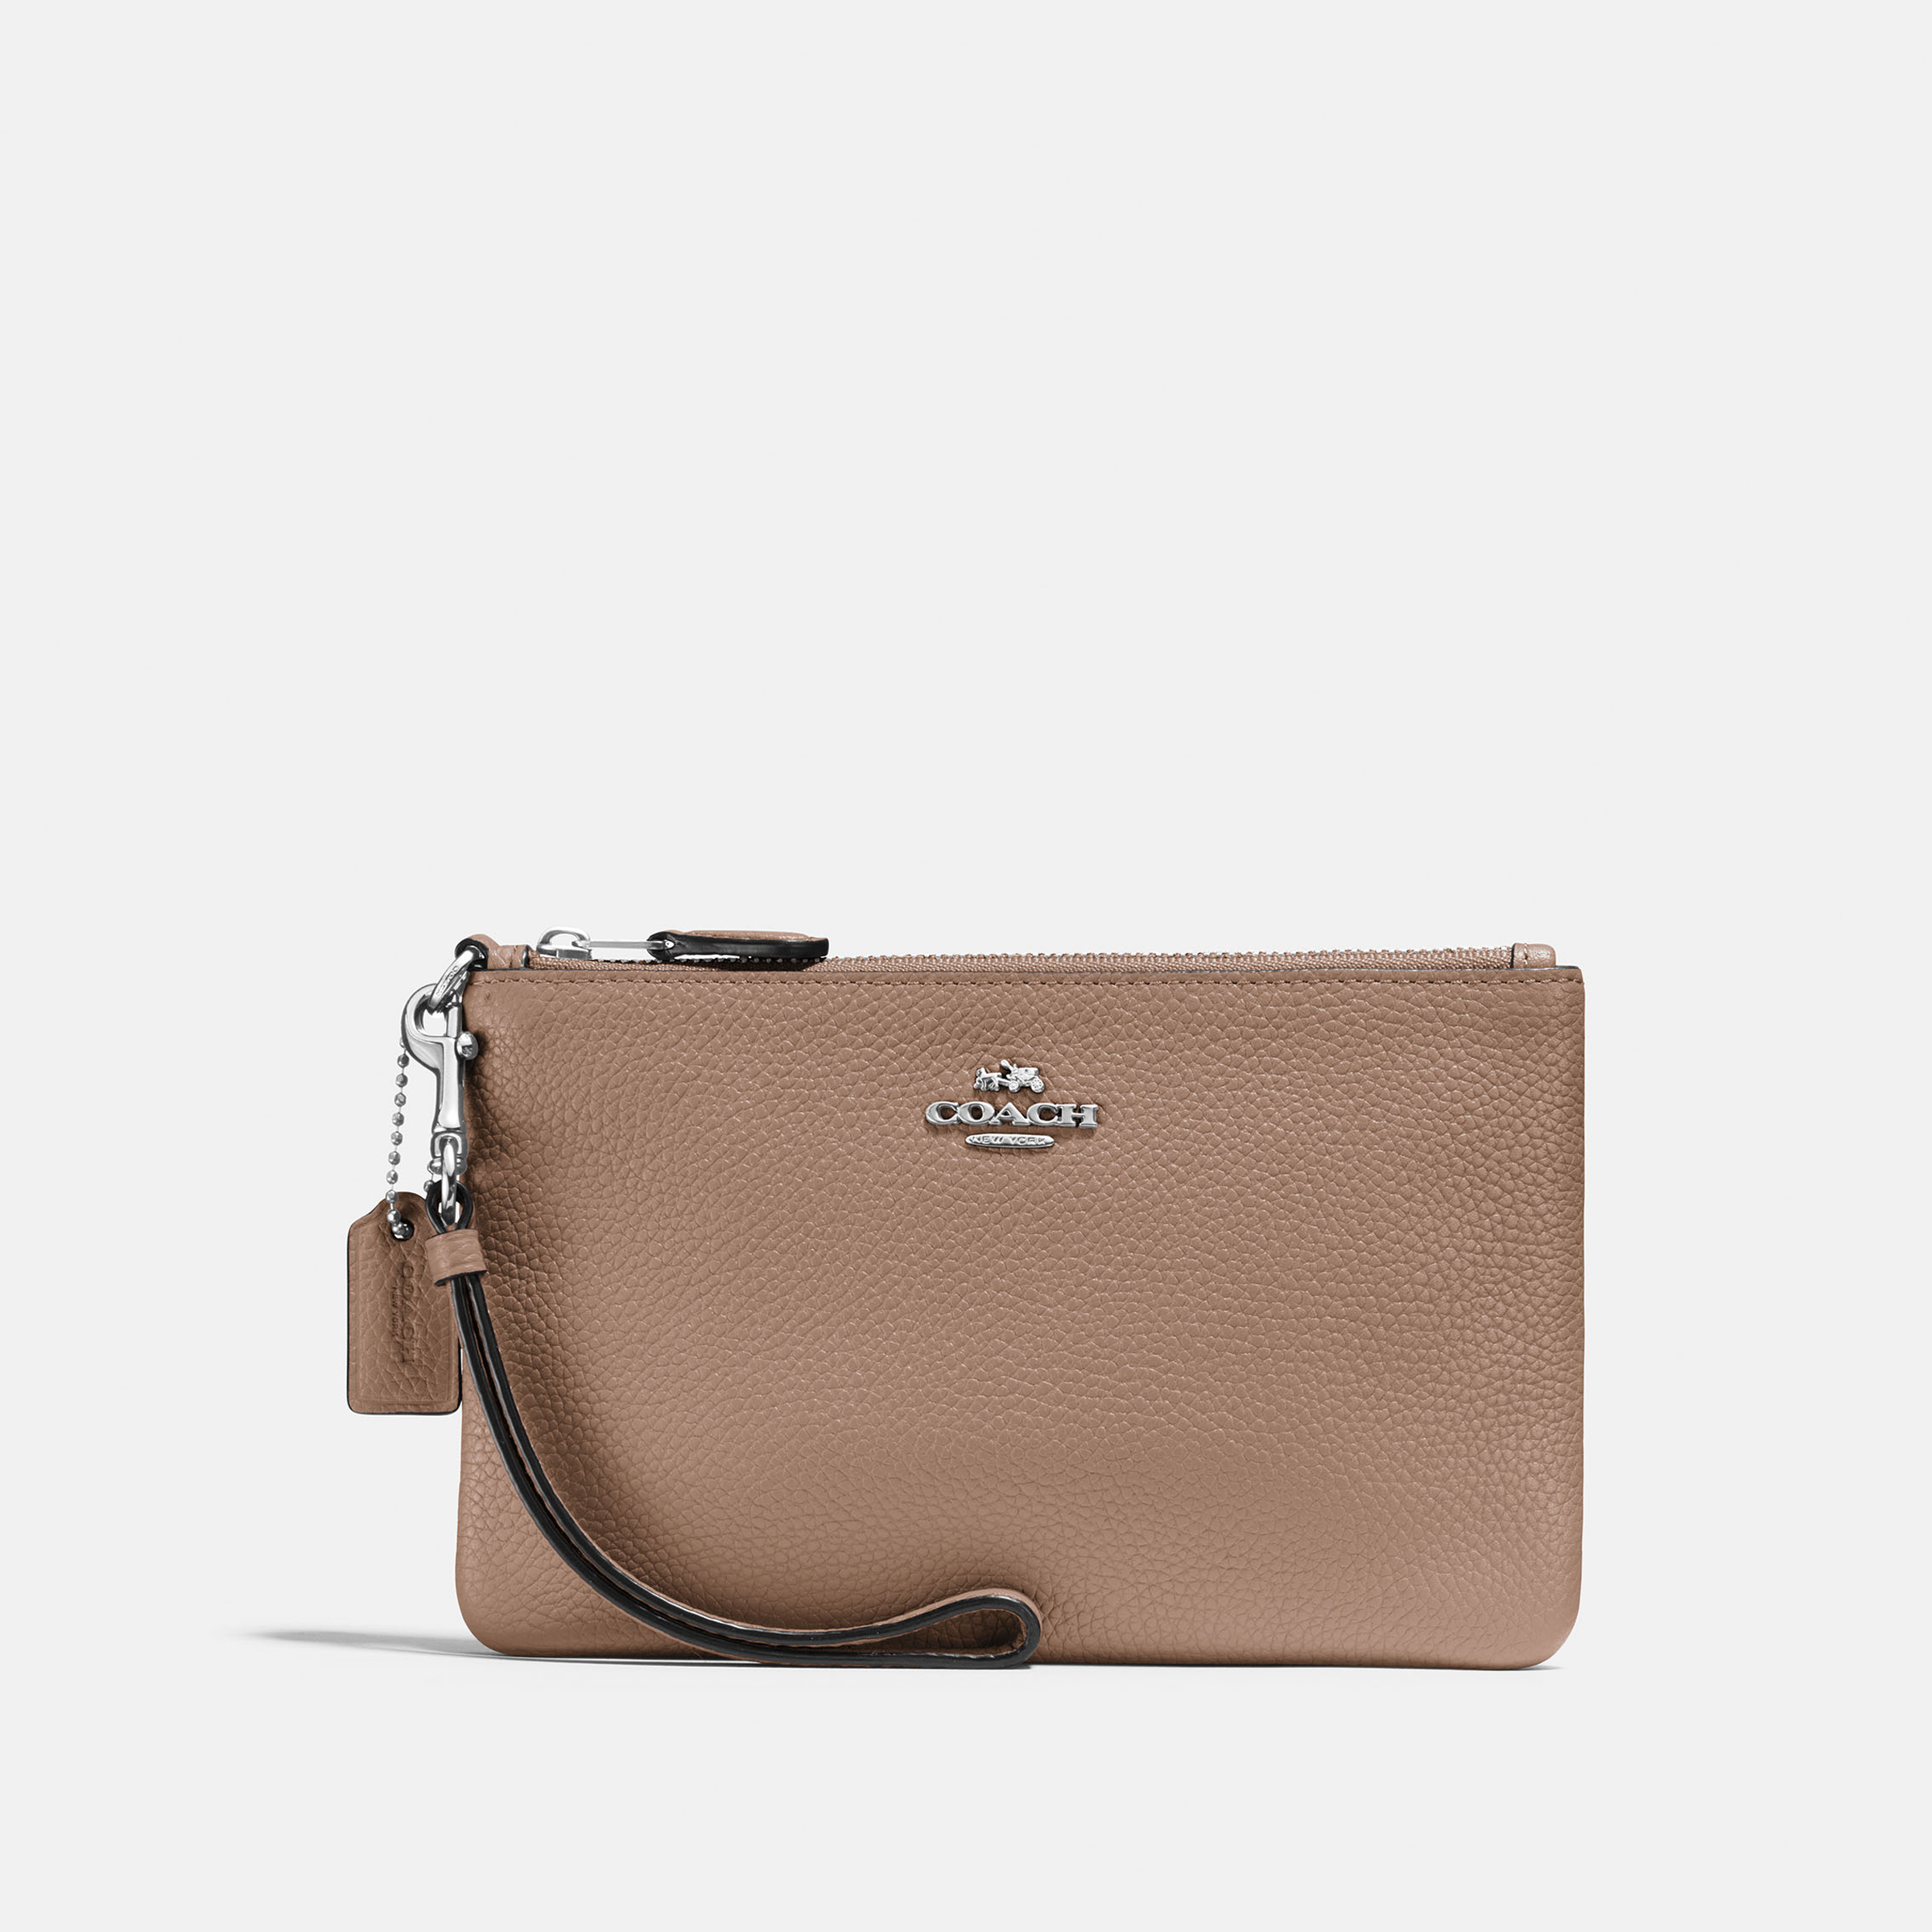 SMALL WRISTLET TAUPE